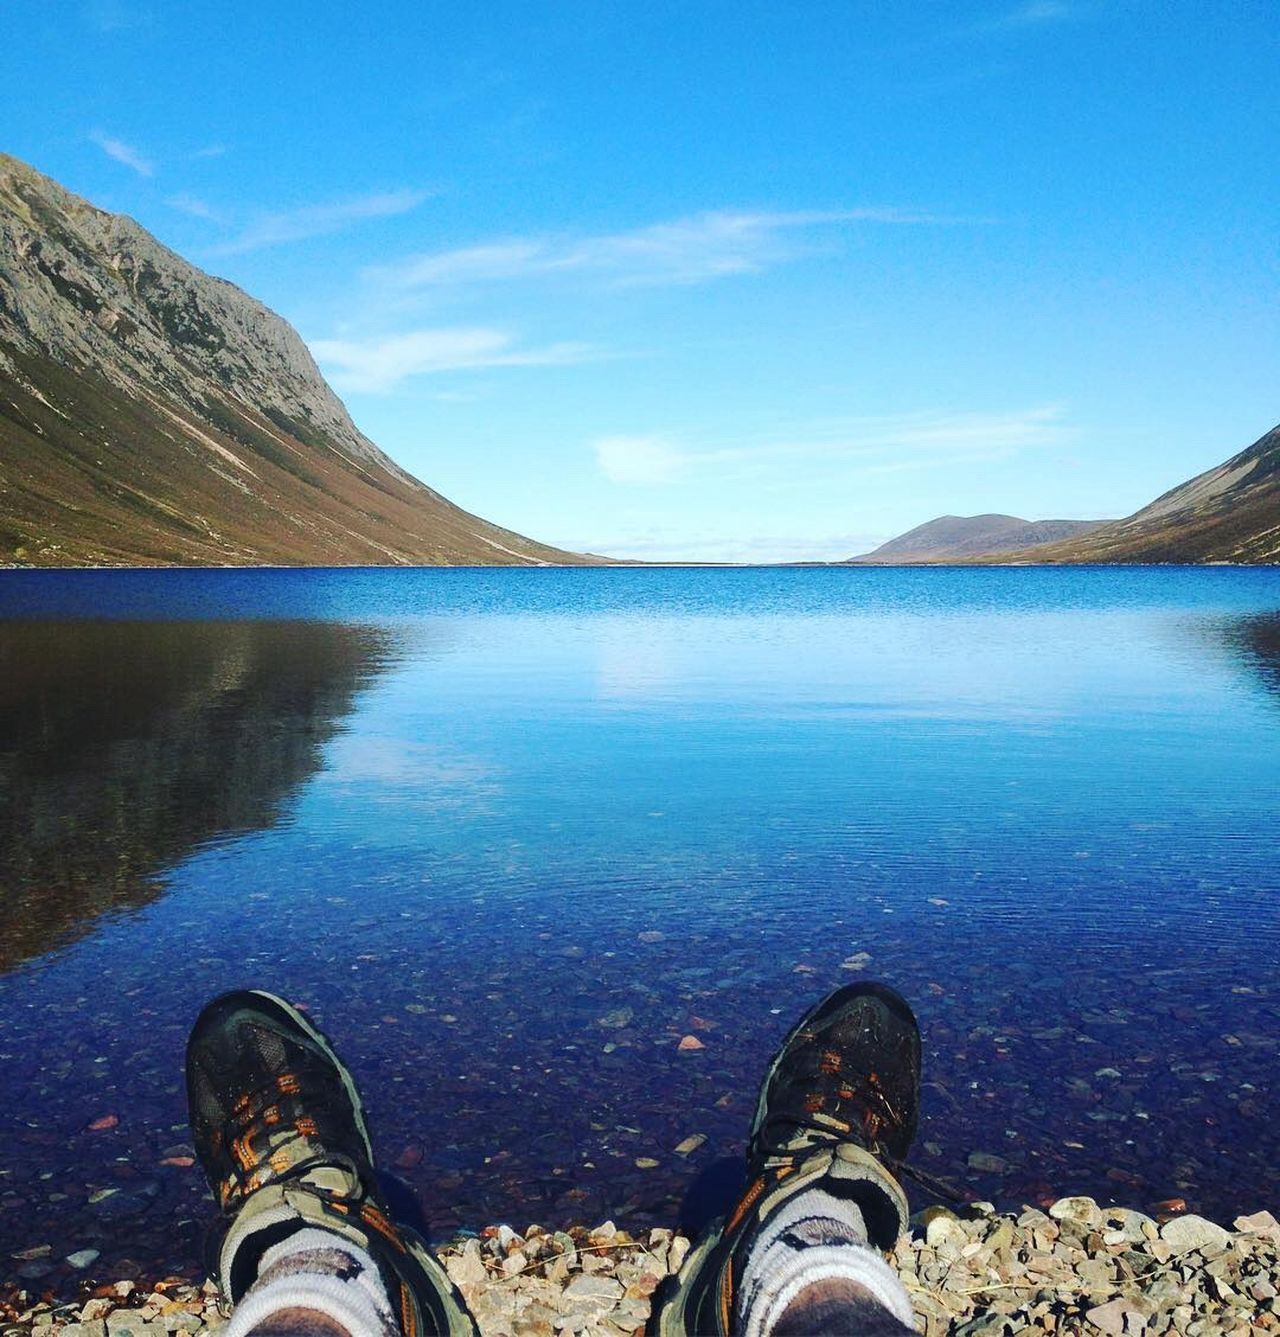 Low Section Sky Water Personal Perspective Reflection Blue One Person Shoe Scenics Nature Beauty In Nature Highlands Mountain Leisure Activity Human Leg Lifestyles Real People Outdoors Day Clear Water Hiking Camping Miles Away Loch Eanaich Loch